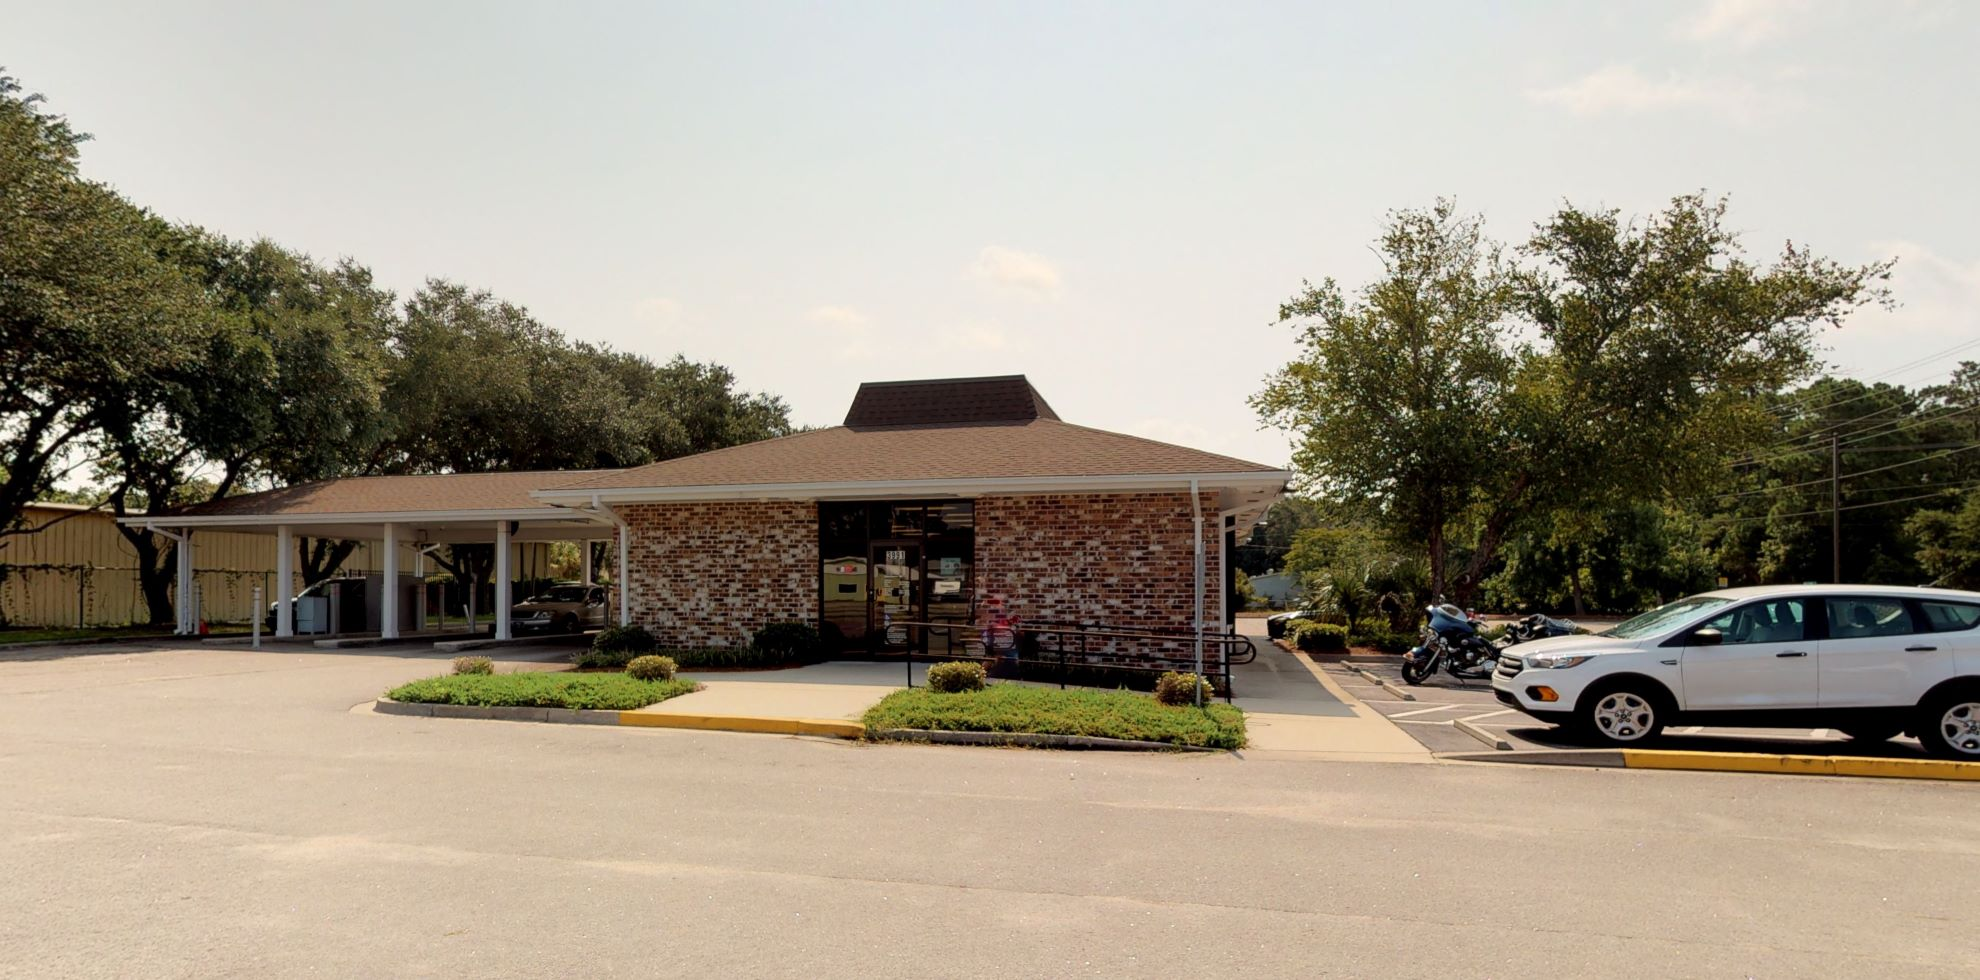 Bank of America financial center with drive-thru ATM and teller | 3991 Highway 17, Murrells Inlet, SC 29576